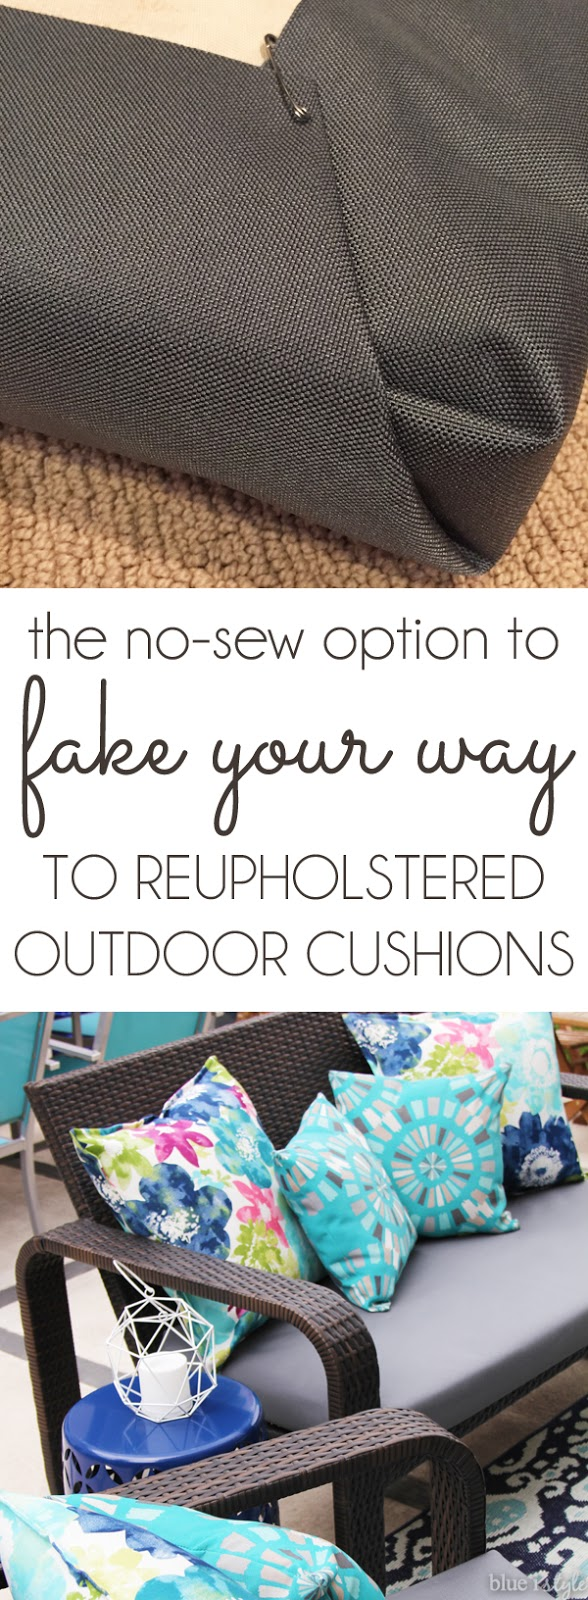 No-sew recover outdoor cushions